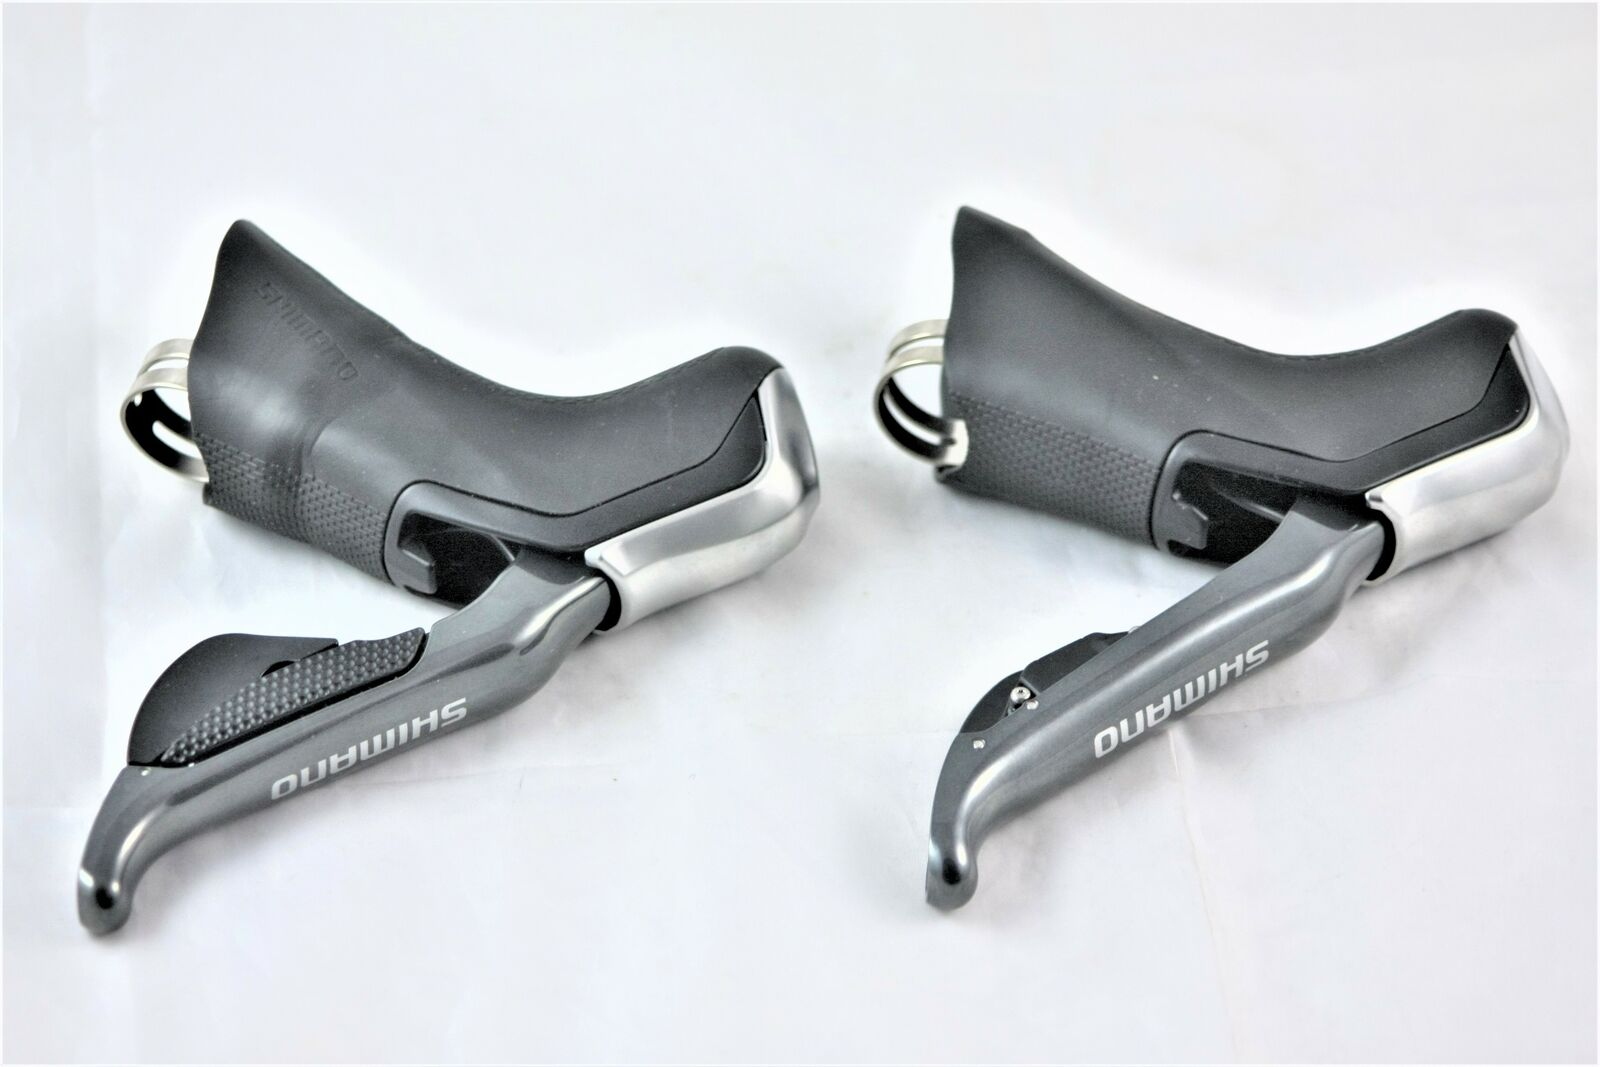 Shift Lever Set Shimano Di2 ST-R785 2f 11f. Cyclo cross without Accessories